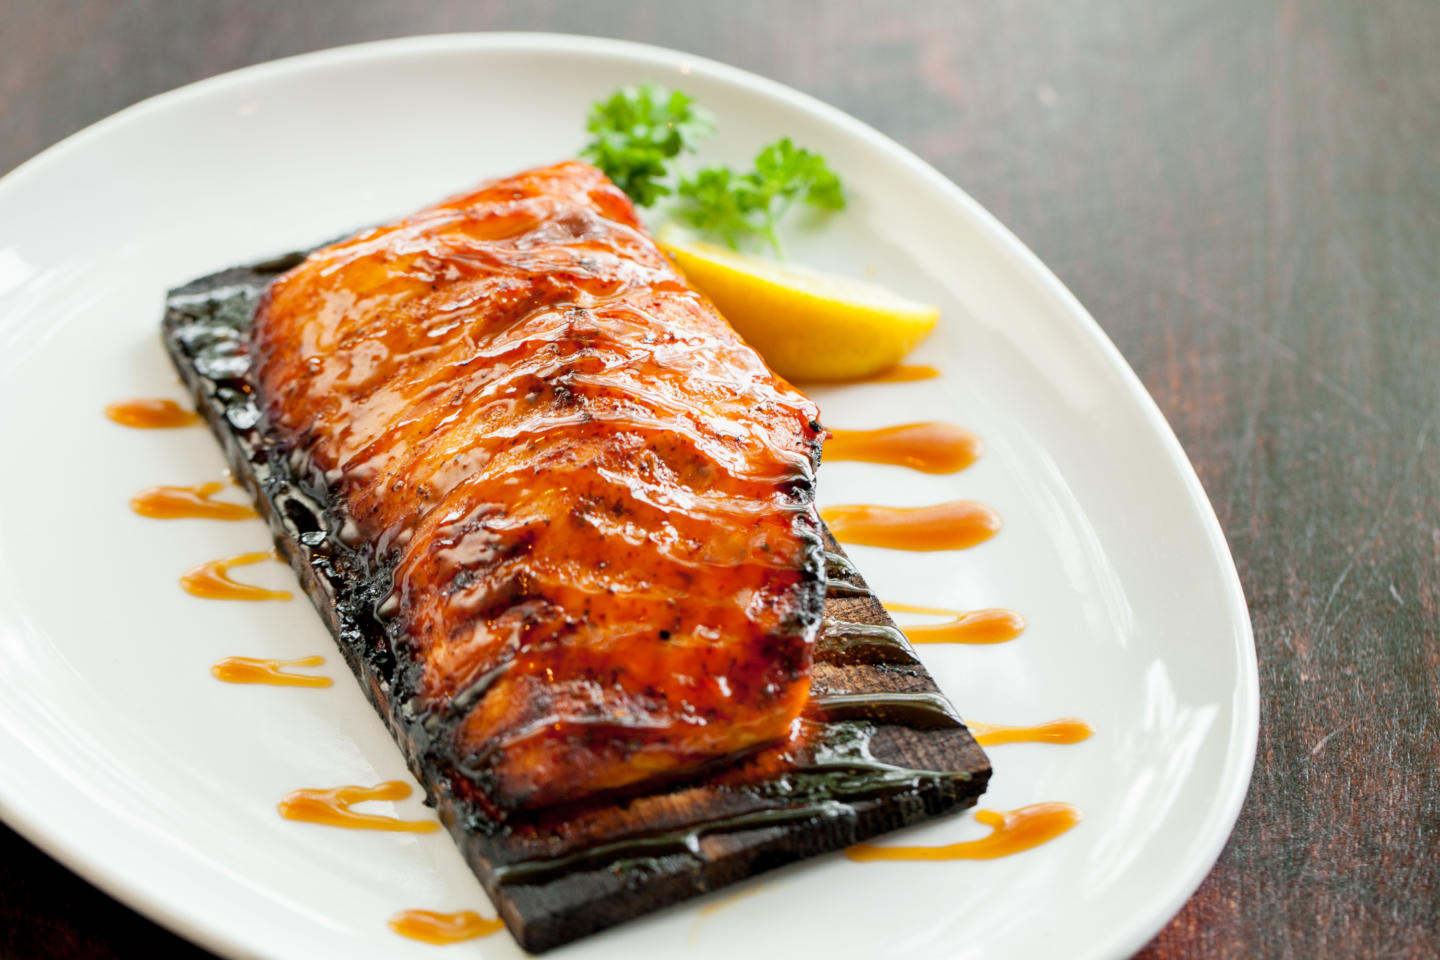 Cedar-planked salmon on a plate